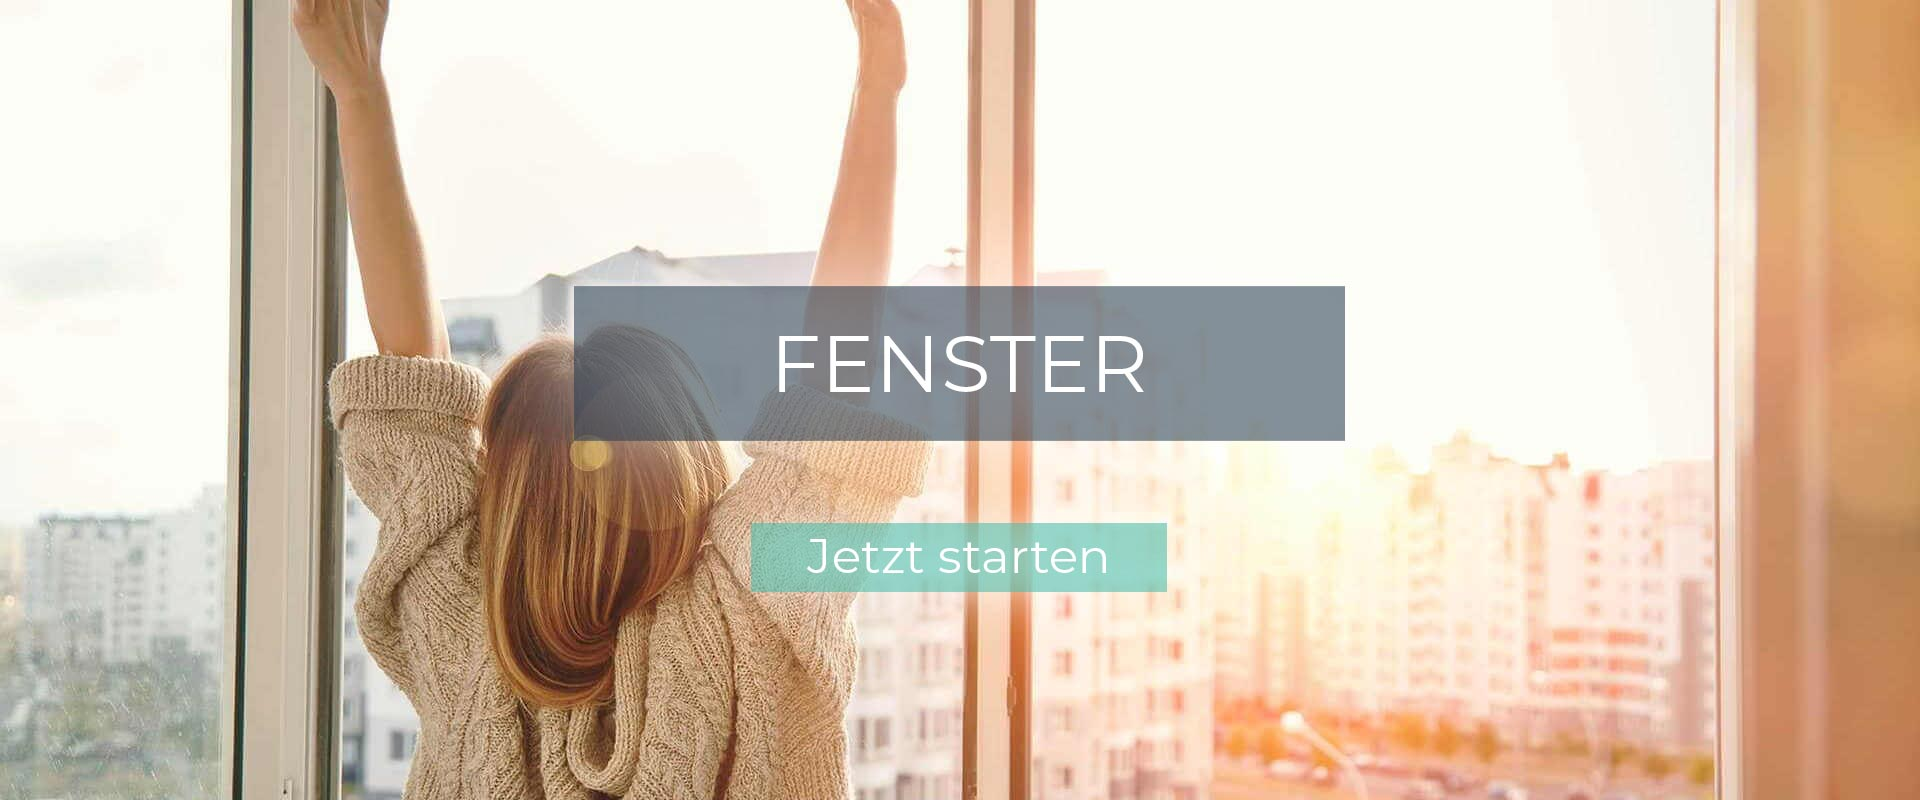 Fenster Slider desktop